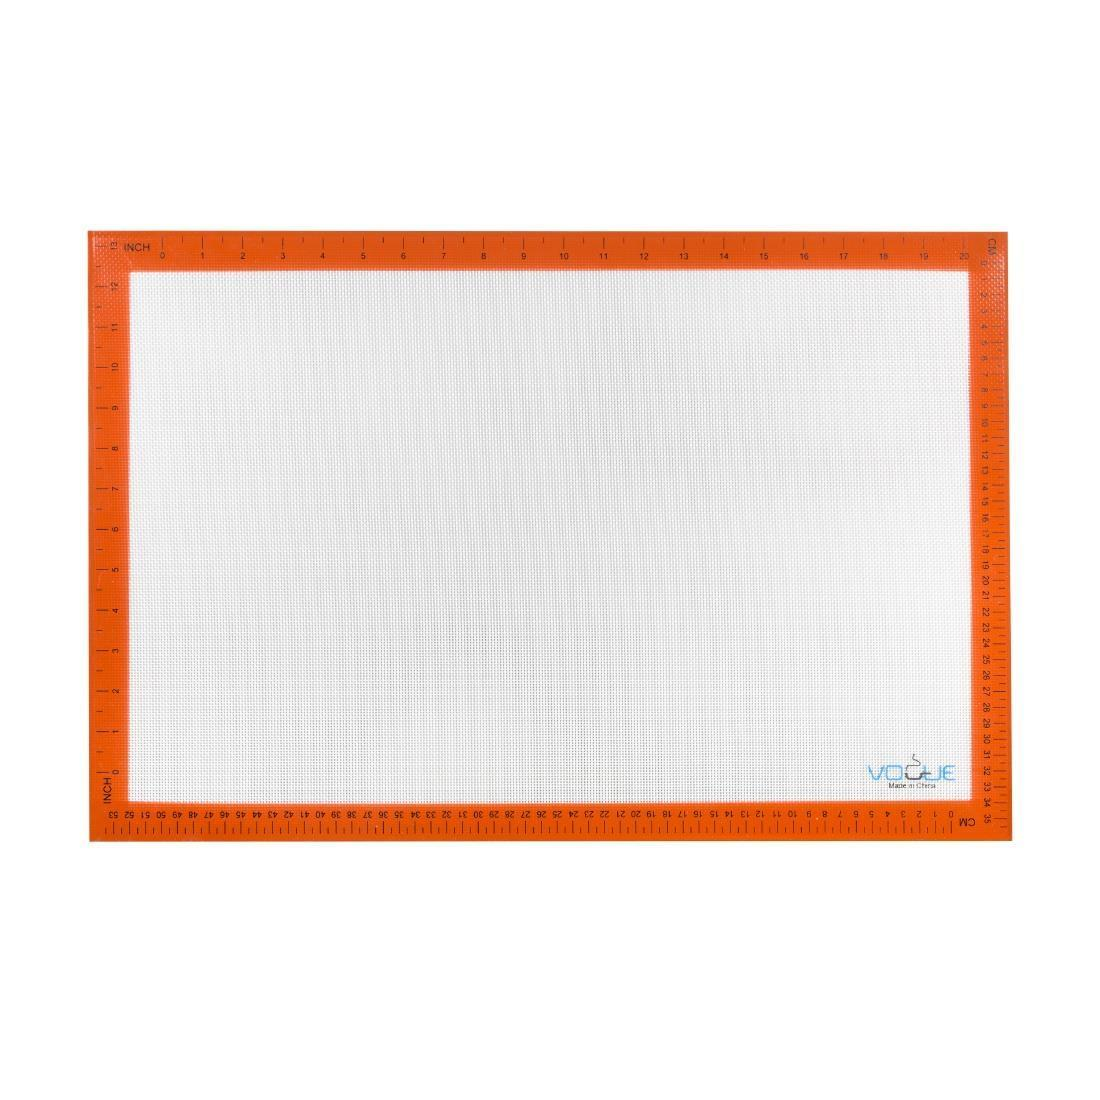 Vogue Non-Stick Silicone Baking Mat 585 x 385mm - Each - E687